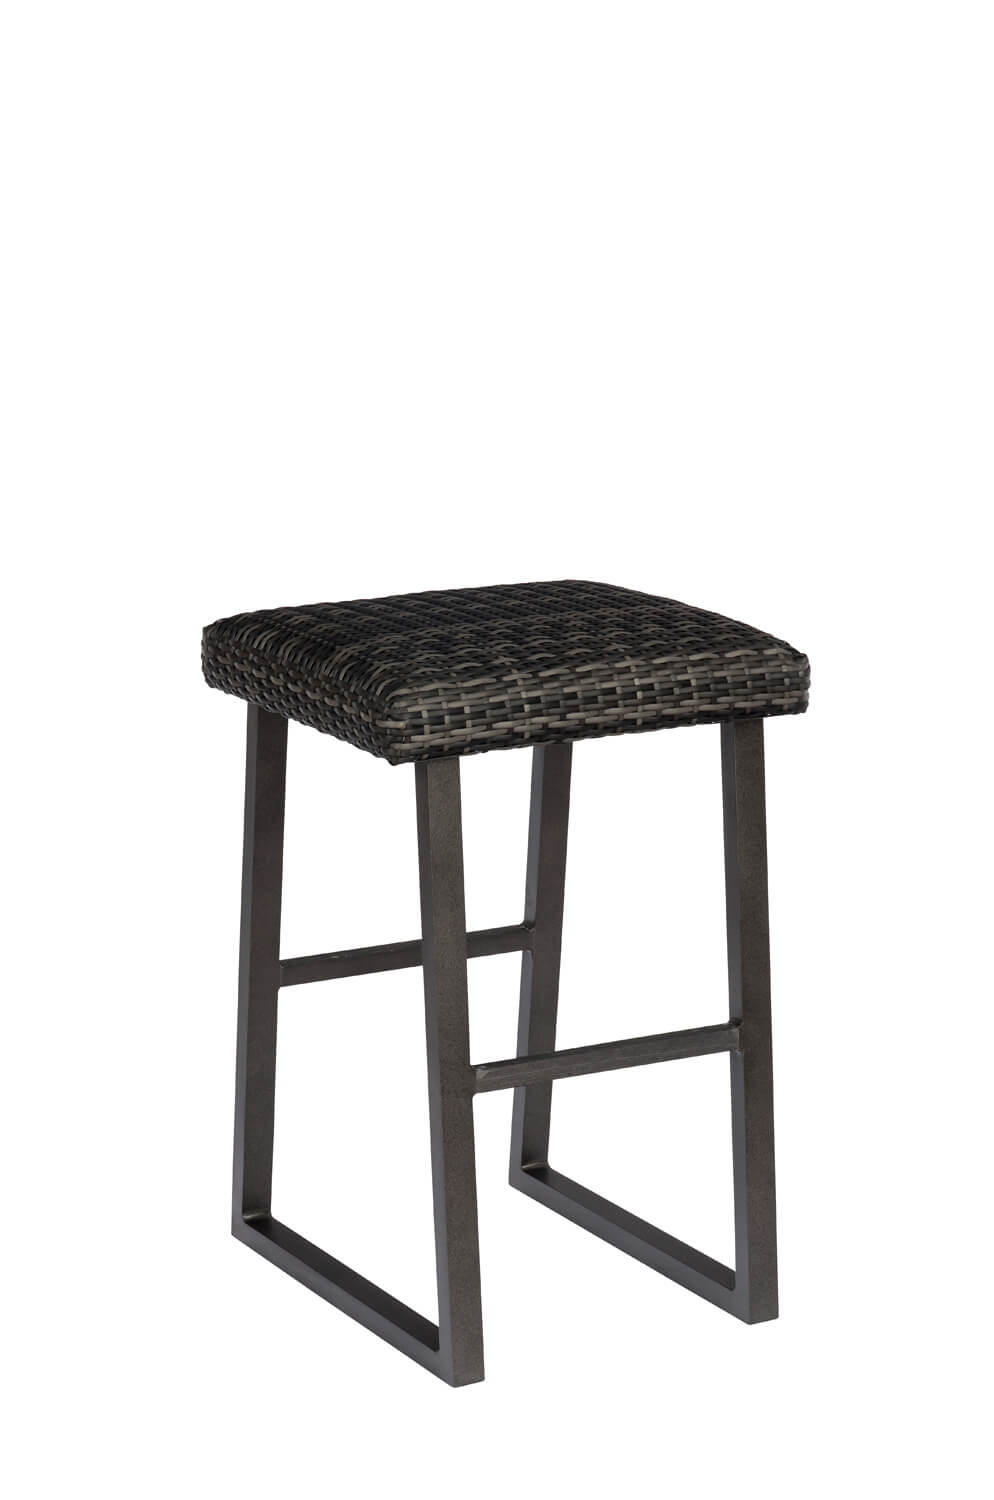 Buy Woodard S Canaveral Harper Backless Outdoor Woven Bar